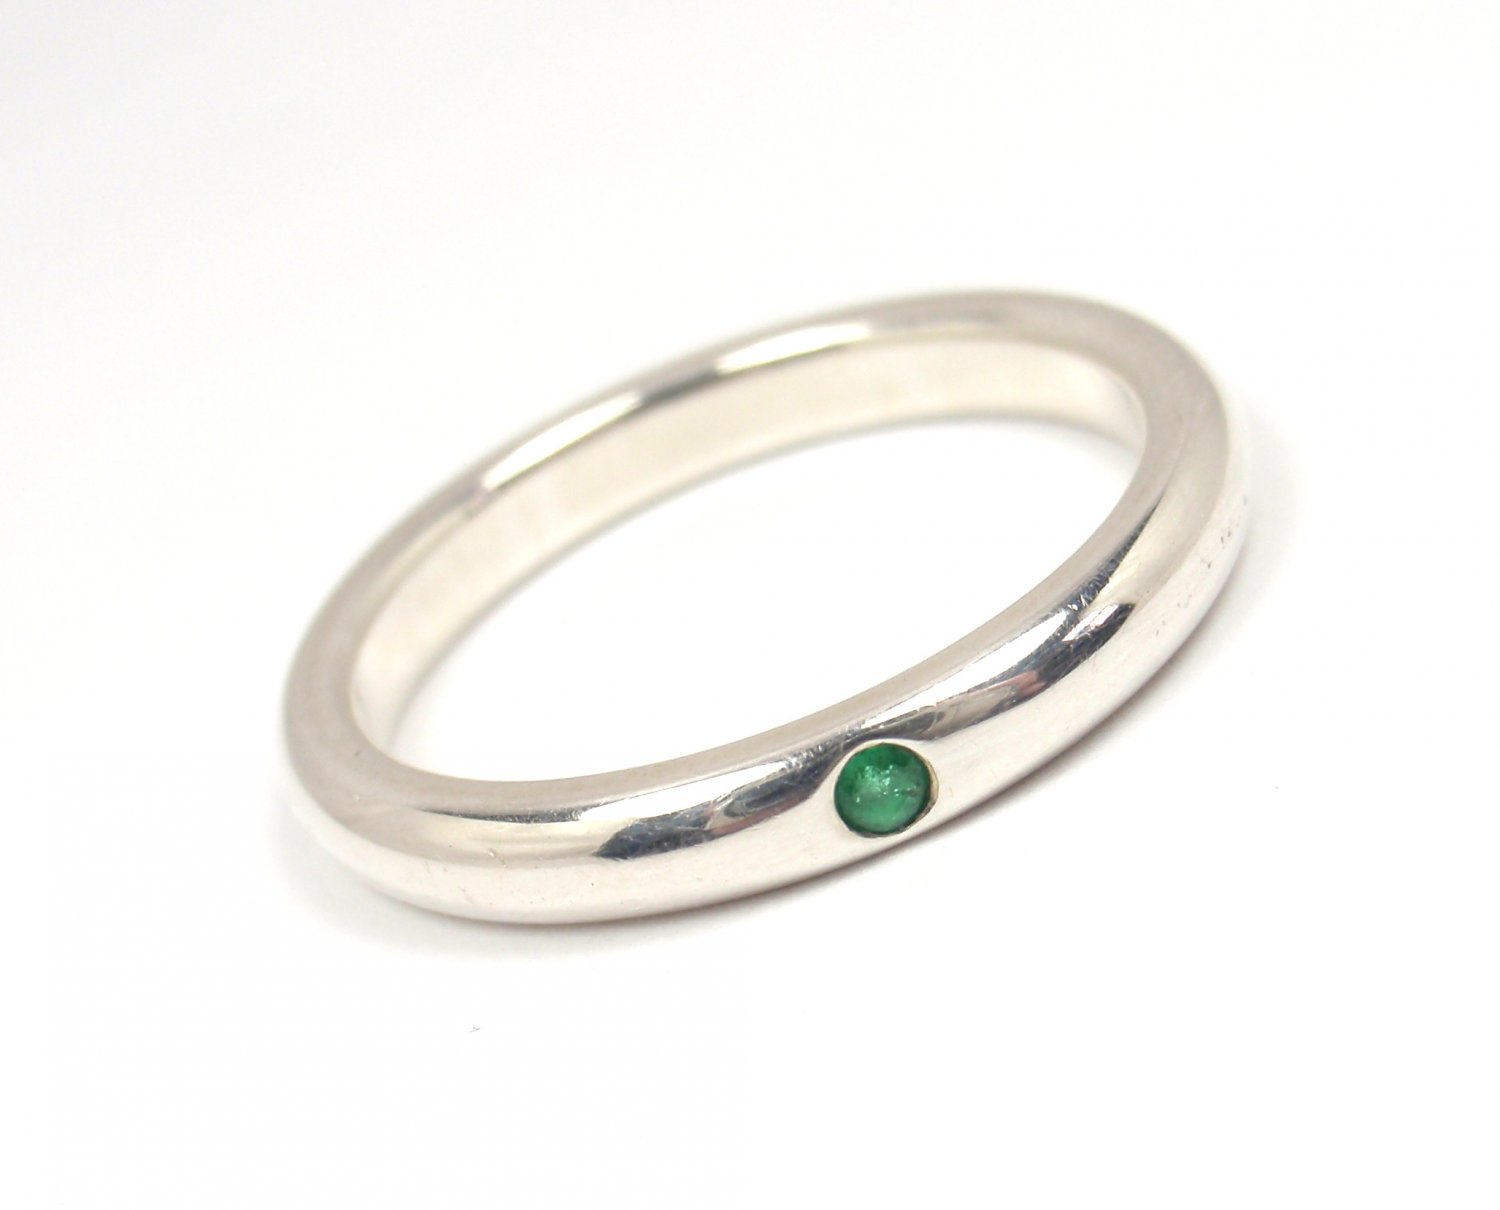 Tiffany & Co Peretti Sterling Silver Emerald Stacking Band Ring Size 5